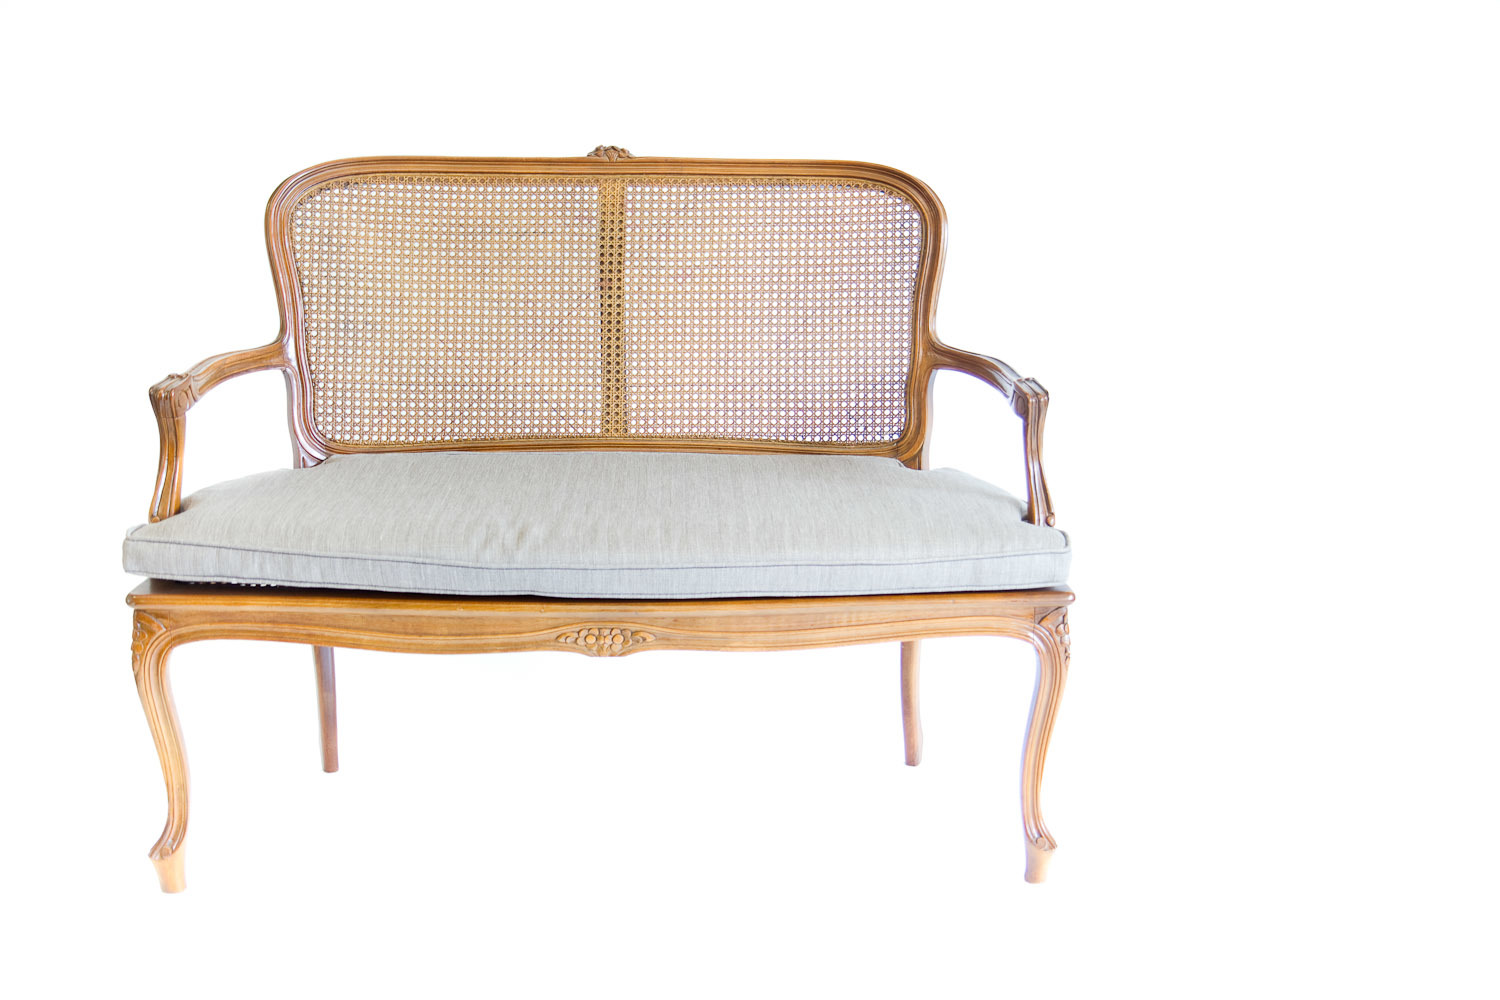 (S-022) THE CANE-BACK SETTEE